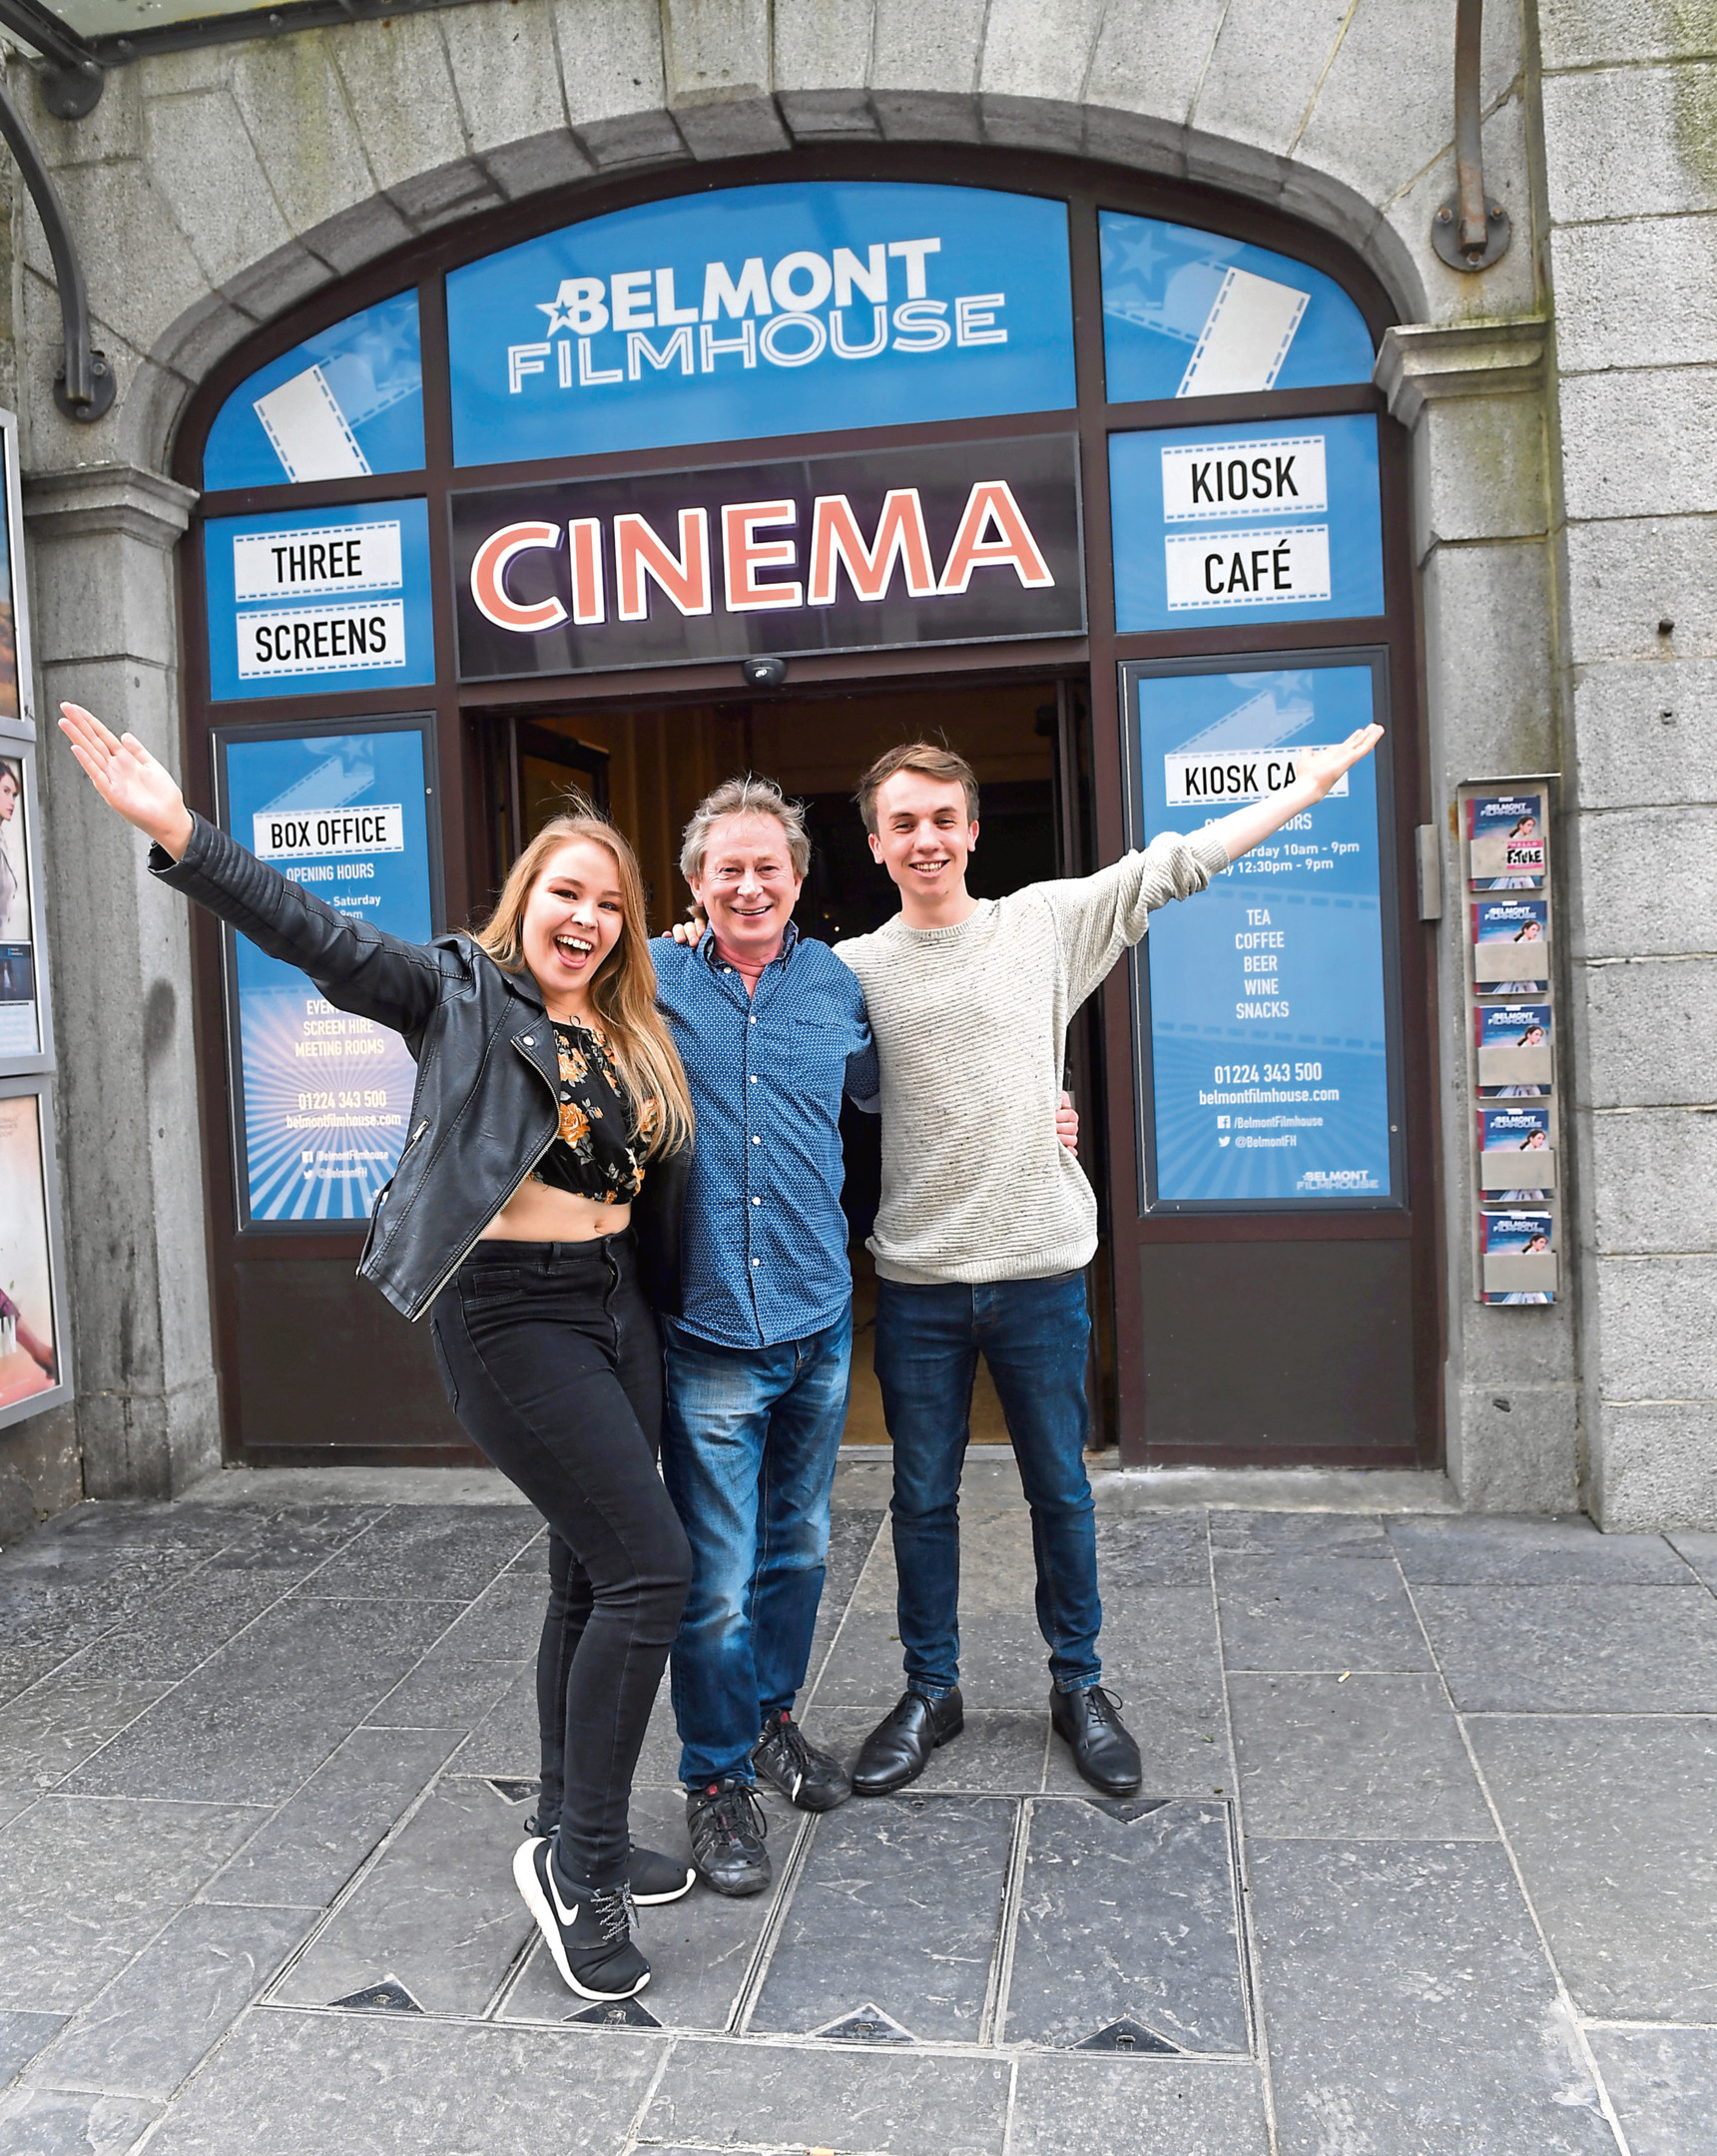 From left, media student Katie Low with the stars of her film Alec Westwood and Ronan Doyle outside the Belmont Filmhouse.